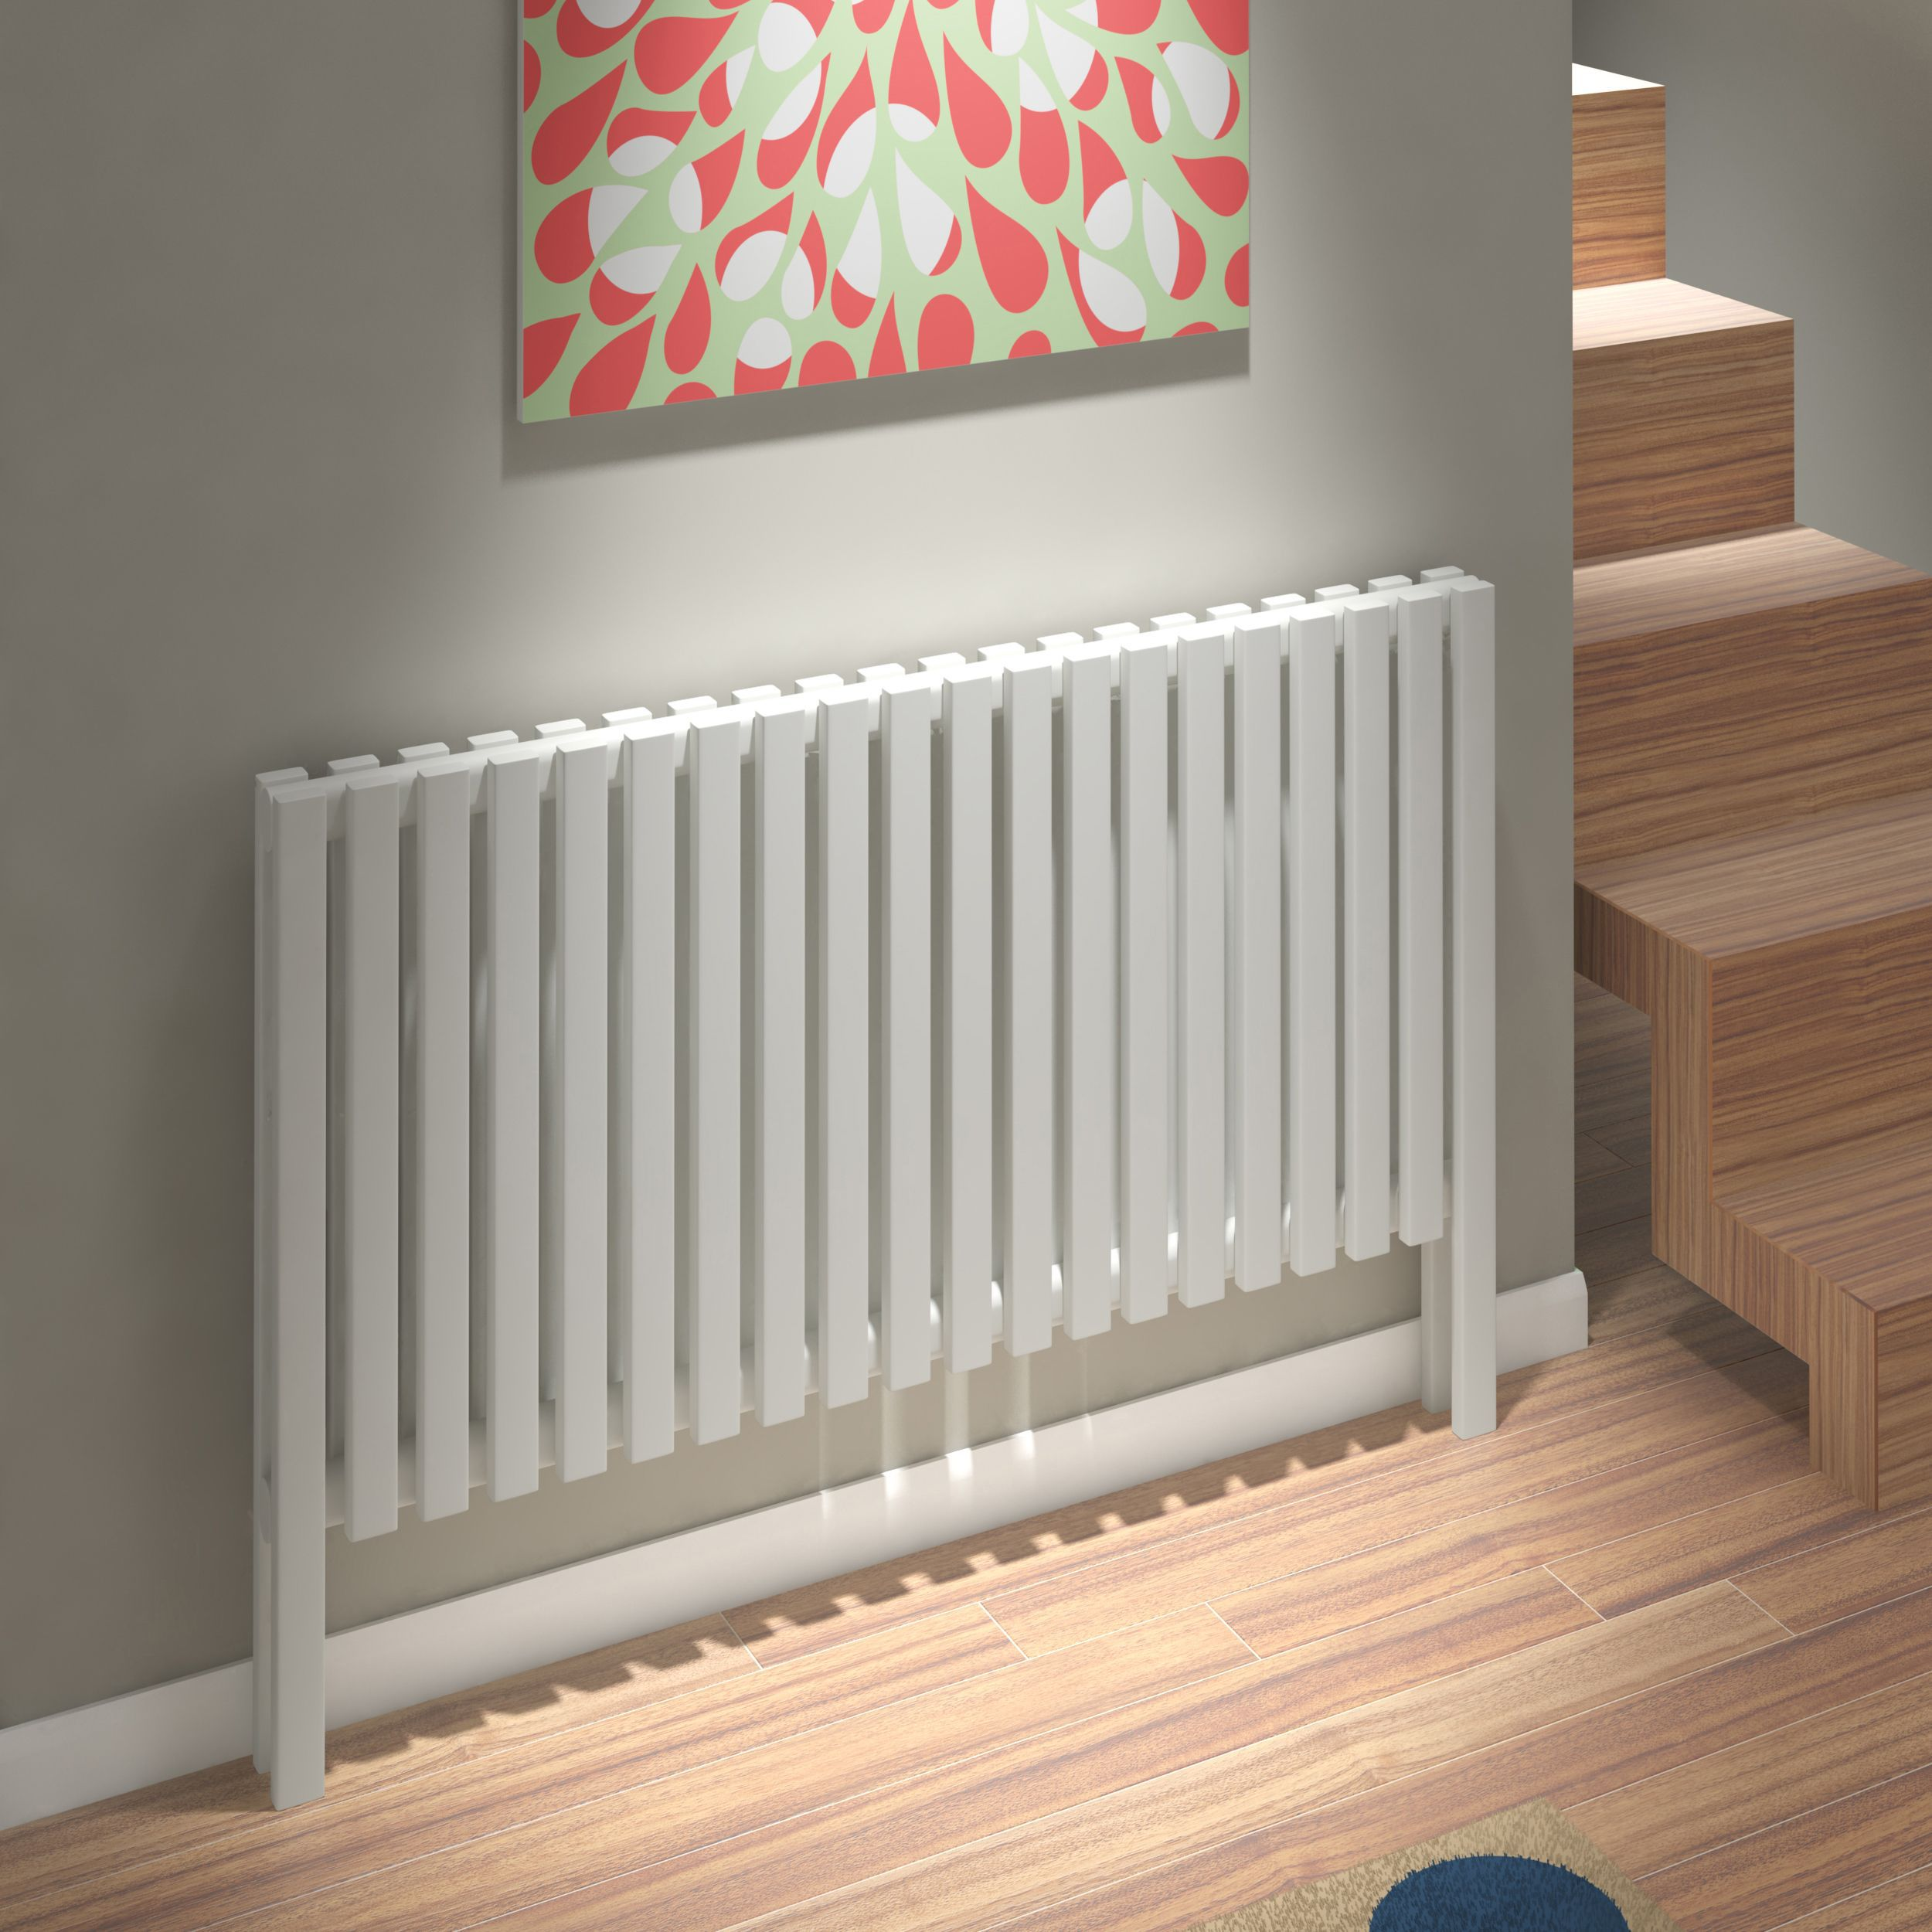 Kudox Axim Horizontal Radiator White (H)800 mm (W)1180